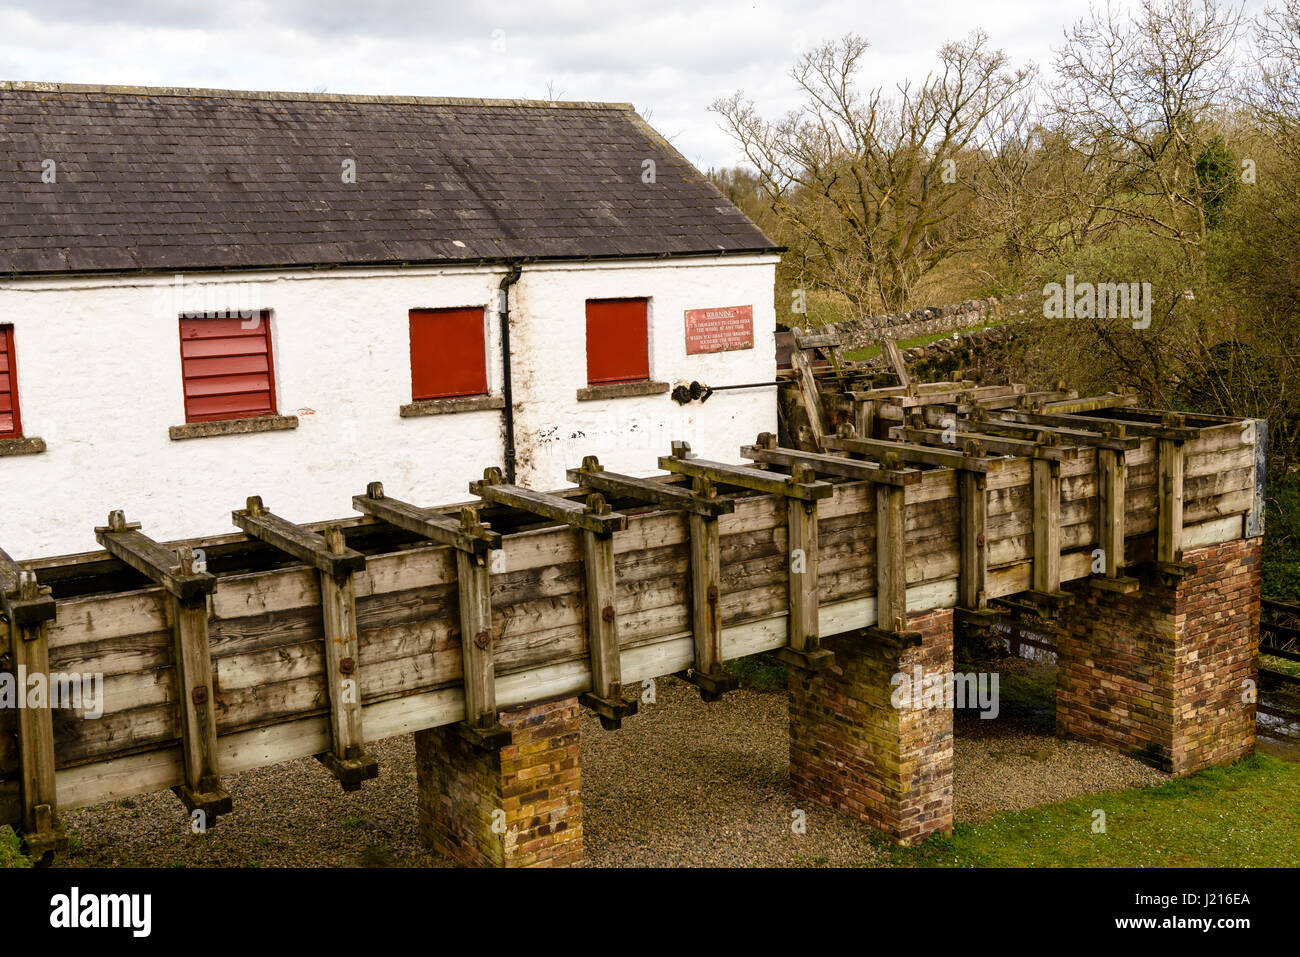 Mill race, to divert water to the waterwheel at Wellbrook Beetling Mill, Cookstown, Northern Ireland - Stock Image